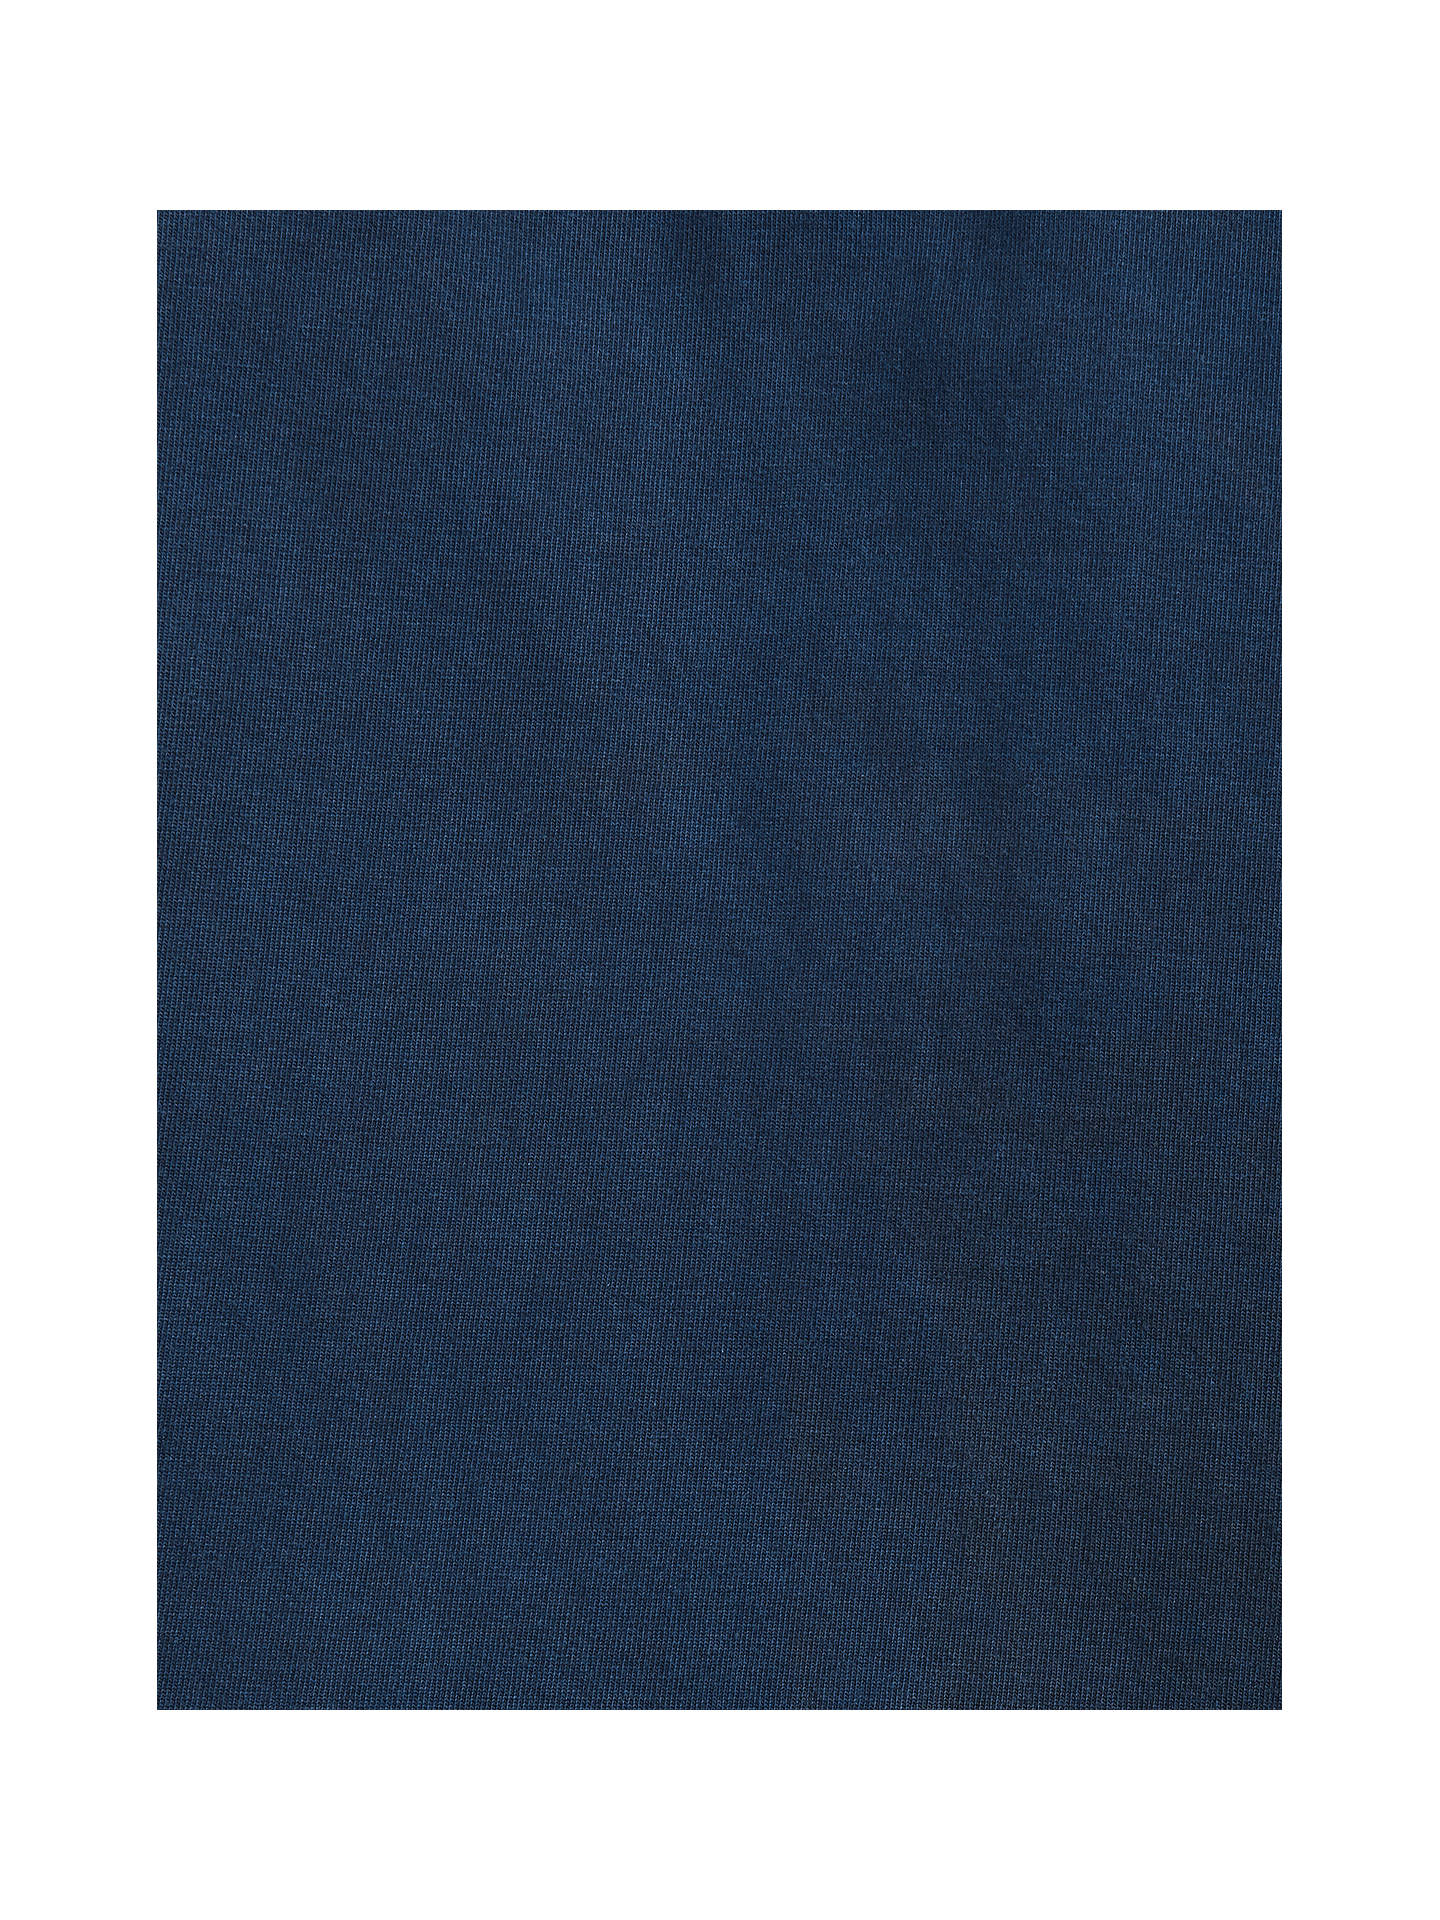 7afdab725db ... Buy Joules Parkside Rugby Jersey Top, French Navy, S Online at  johnlewis.com